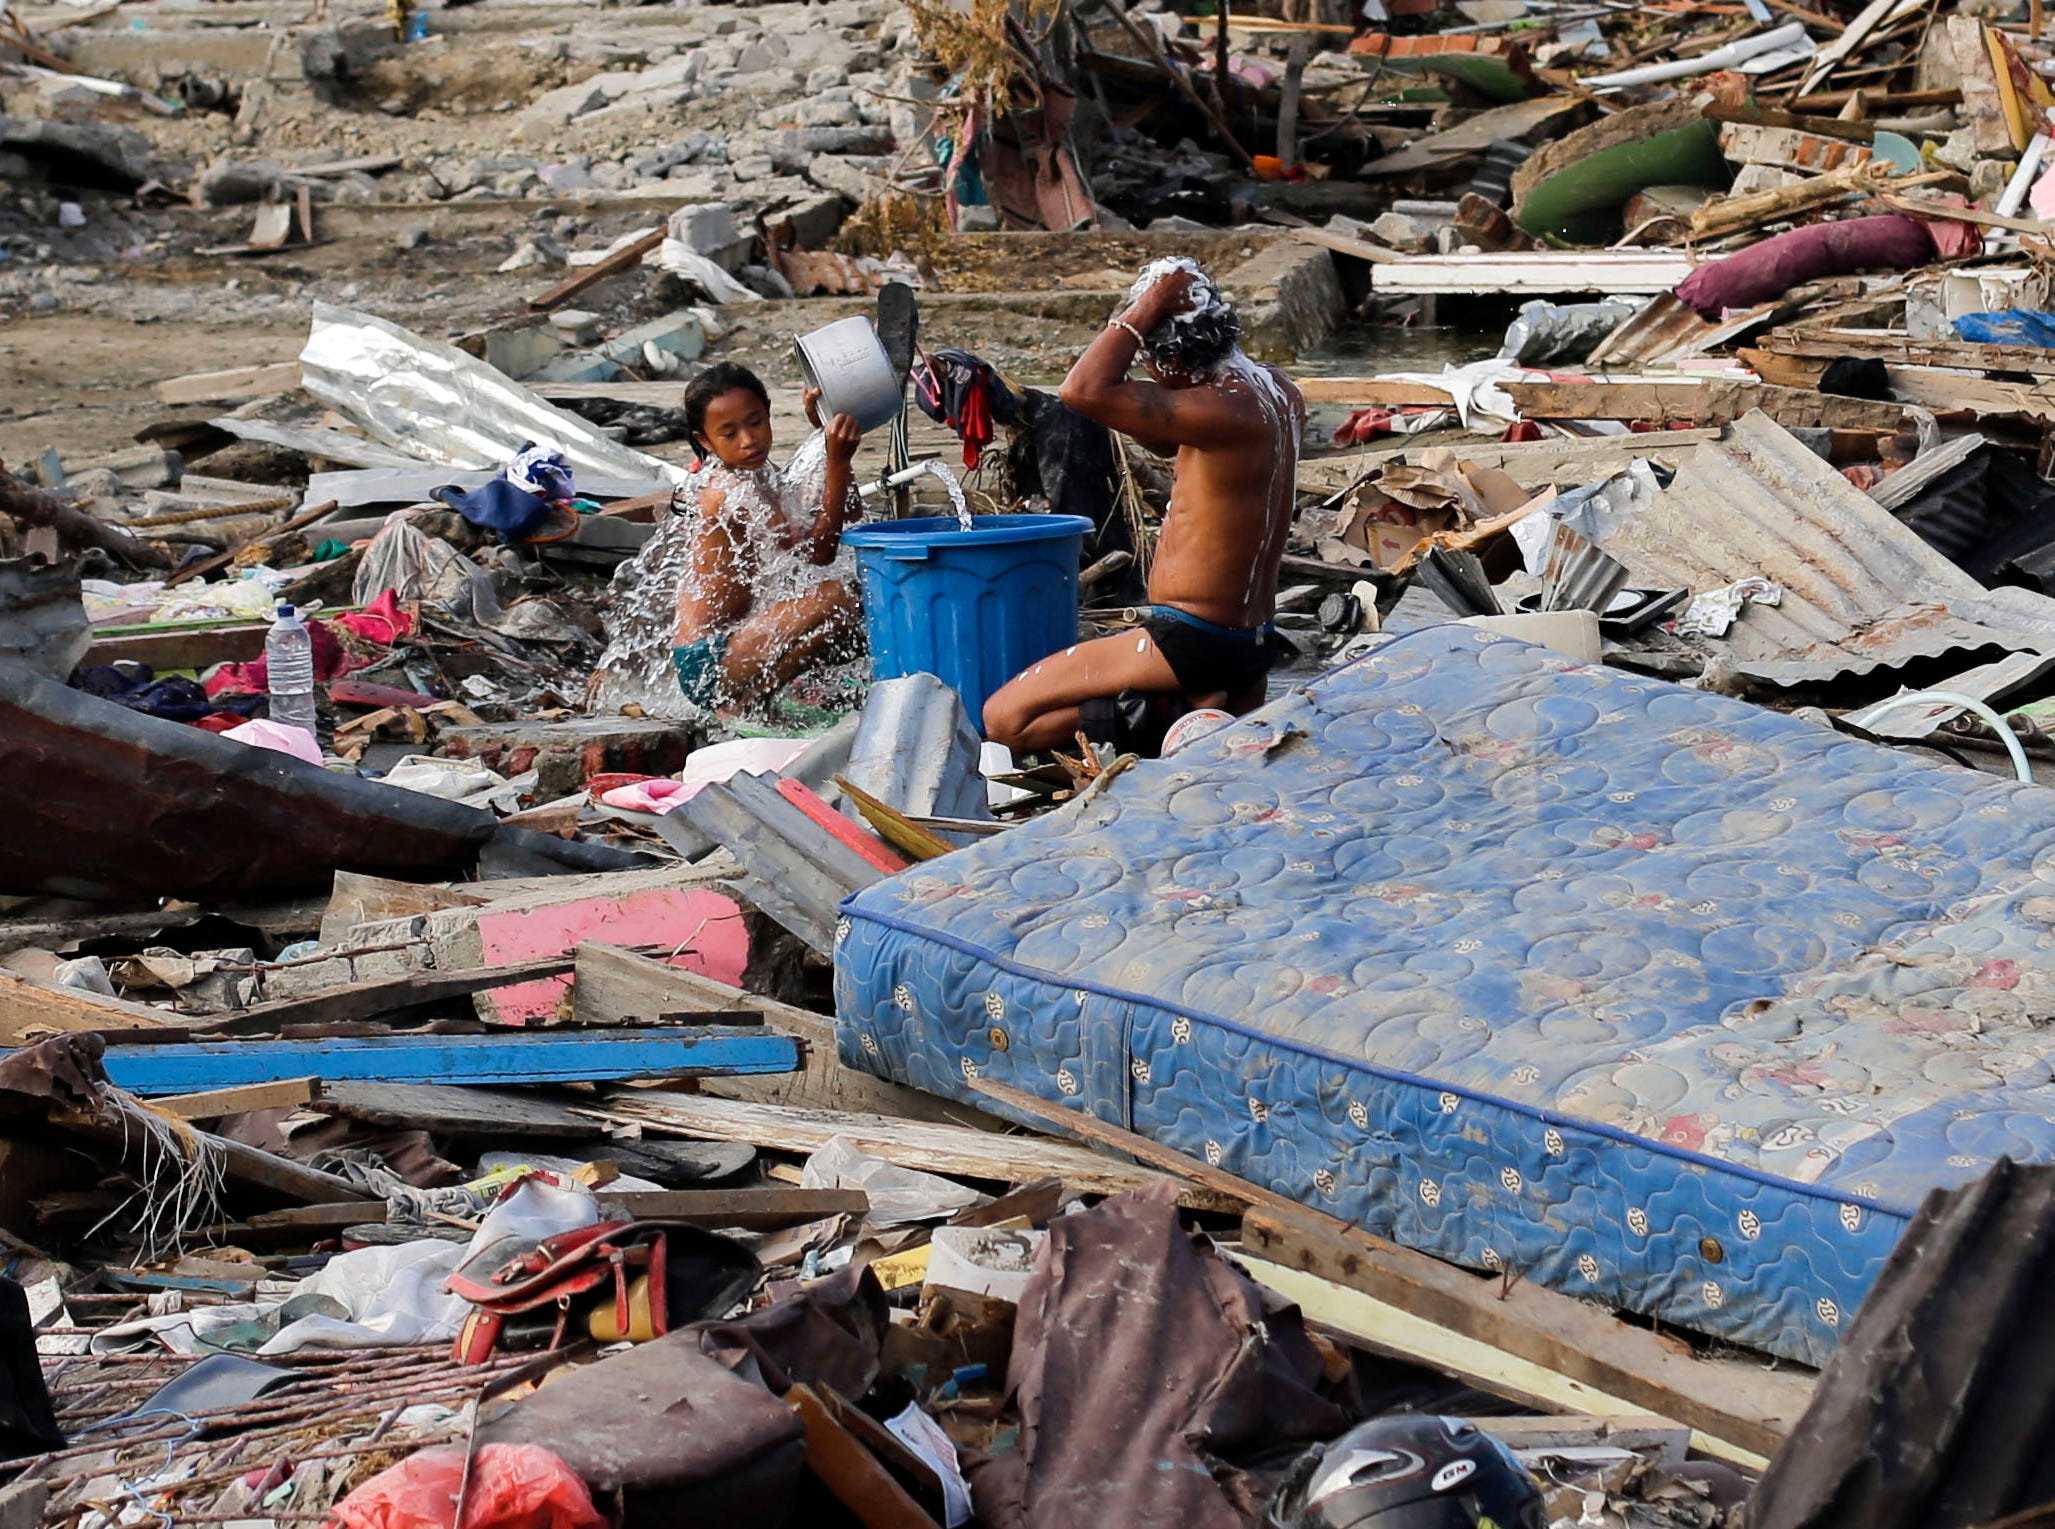 Residents take a bath amidst remains of toppled homes and structures in Palu, Central Sulawesi, Indonesia on Friday, Oct. 5, 2018. As the sun slipped behind the mountains and a gentle breeze blew onshore, hundreds of people gathered on an Indonesian beach Friday to chant a Muslim prayer and remember those they lost one week after a massive earthquake and tsunami ravaged the area, killing more than 1,500 people.